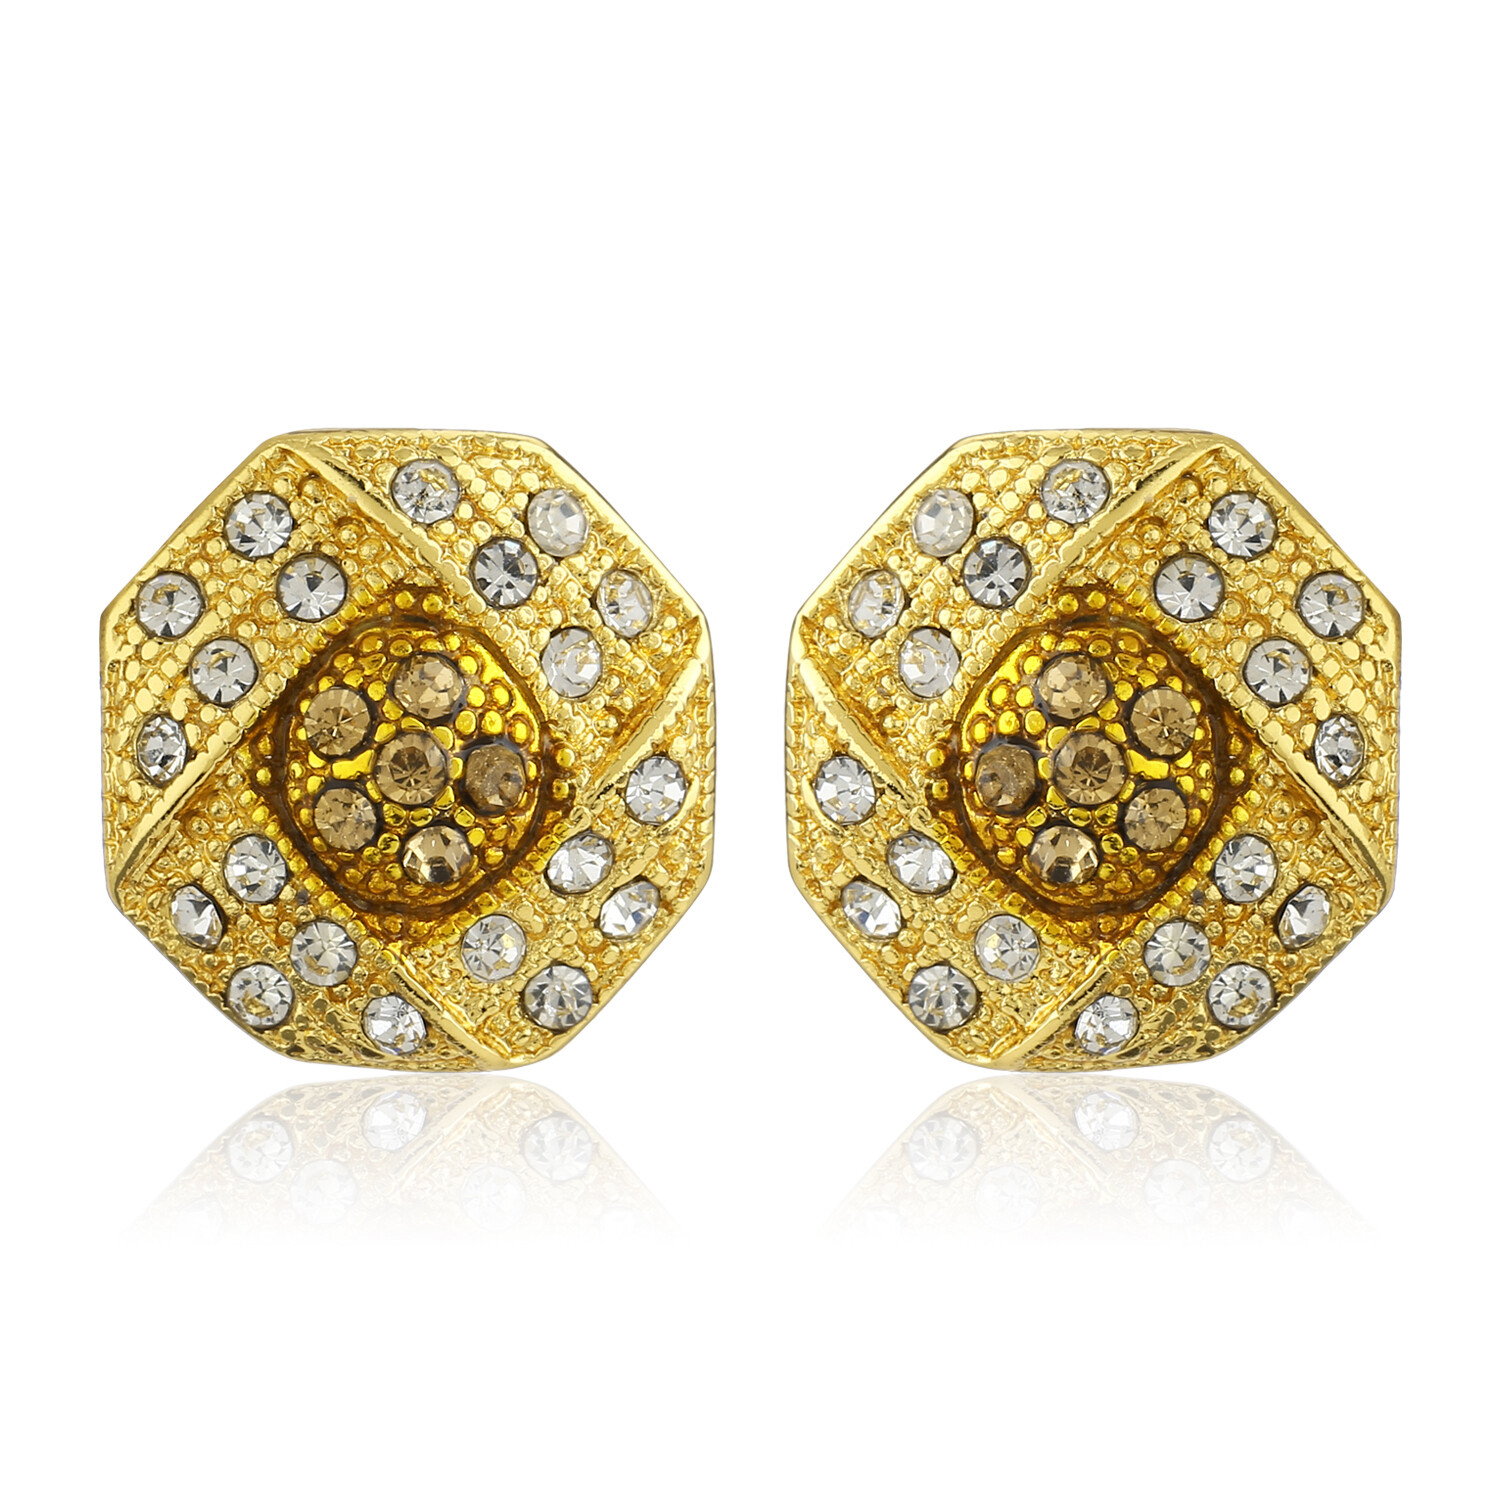 Estele Gold Plated White Austrian Crystal Stone Round Stud Earrings For Womens